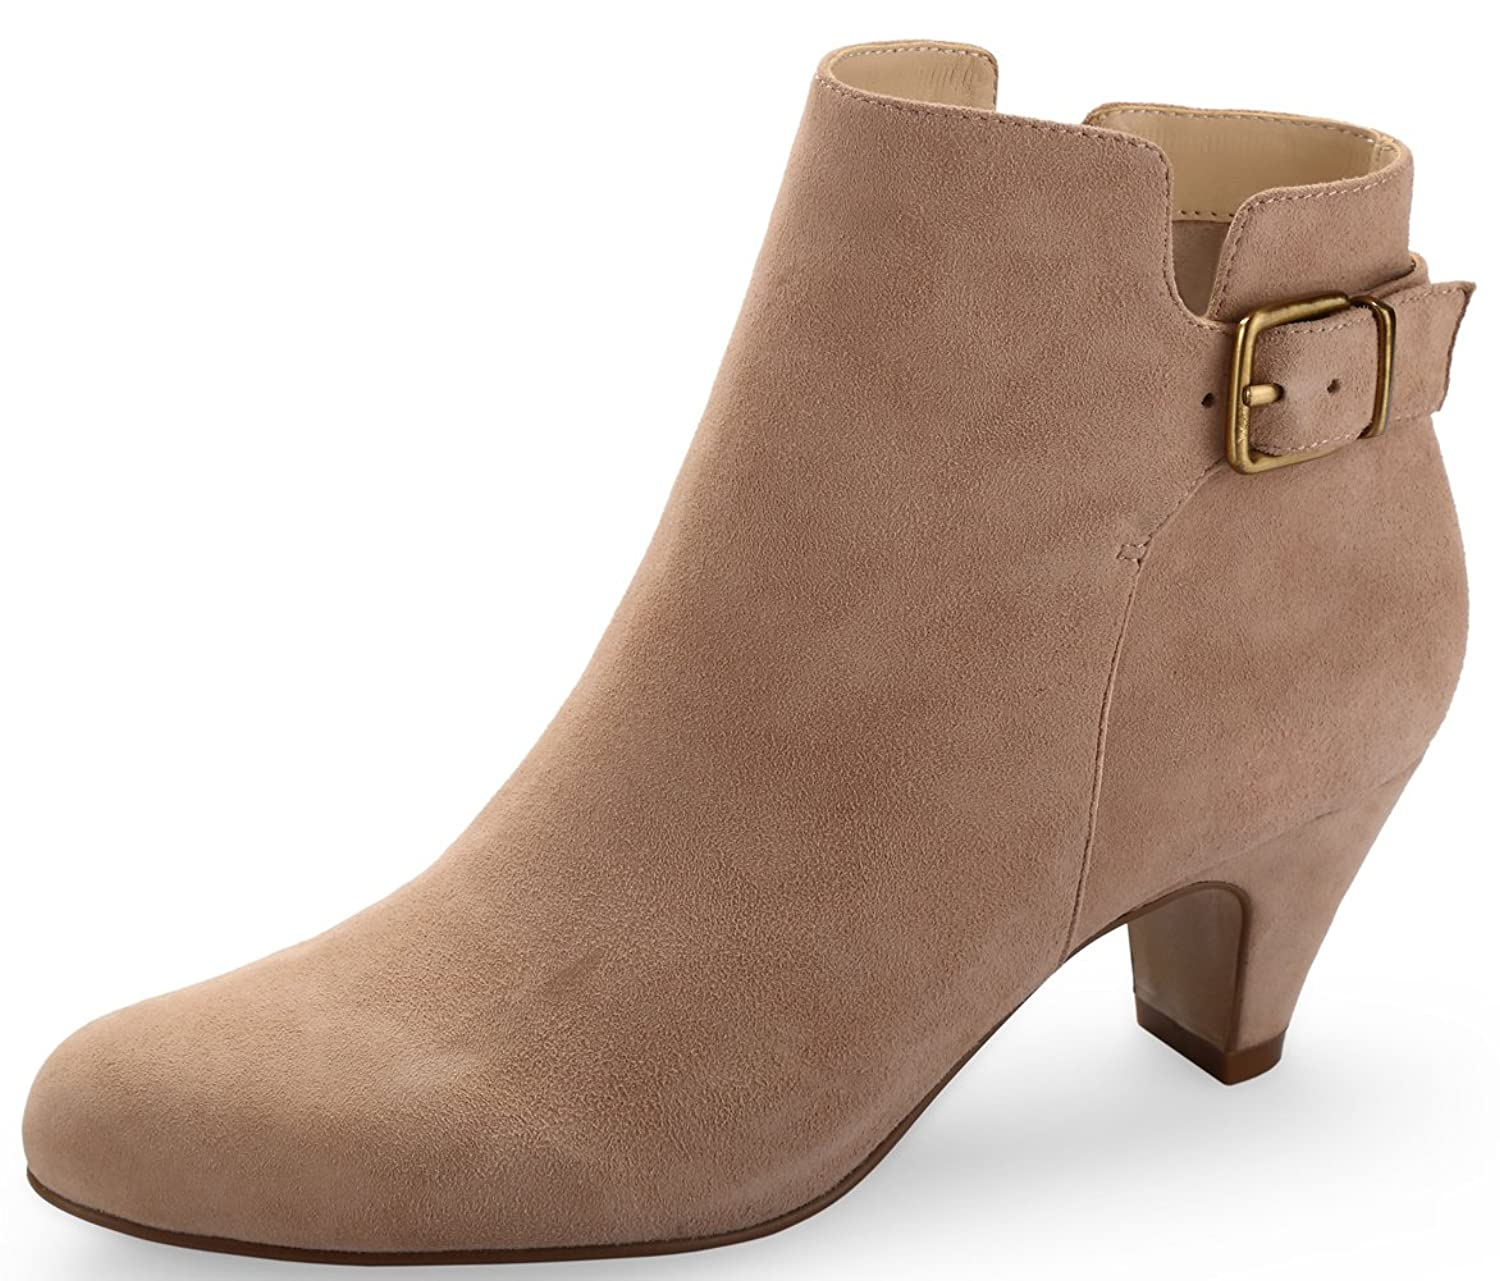 ABUSA Women's Heeled Buckle Leather Ankle Boots